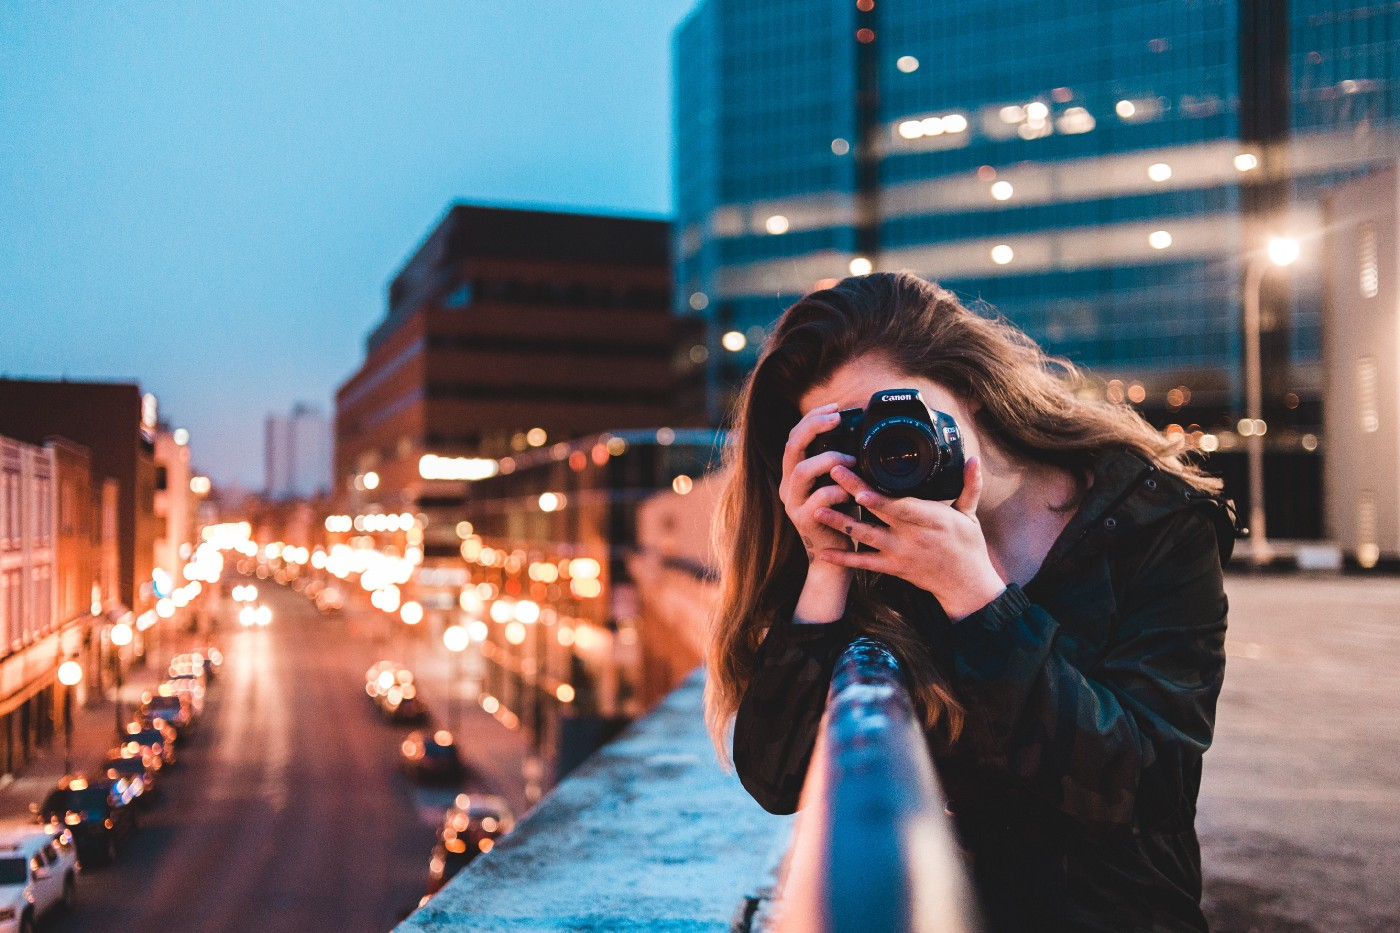 Manage Your Time As A Photographer